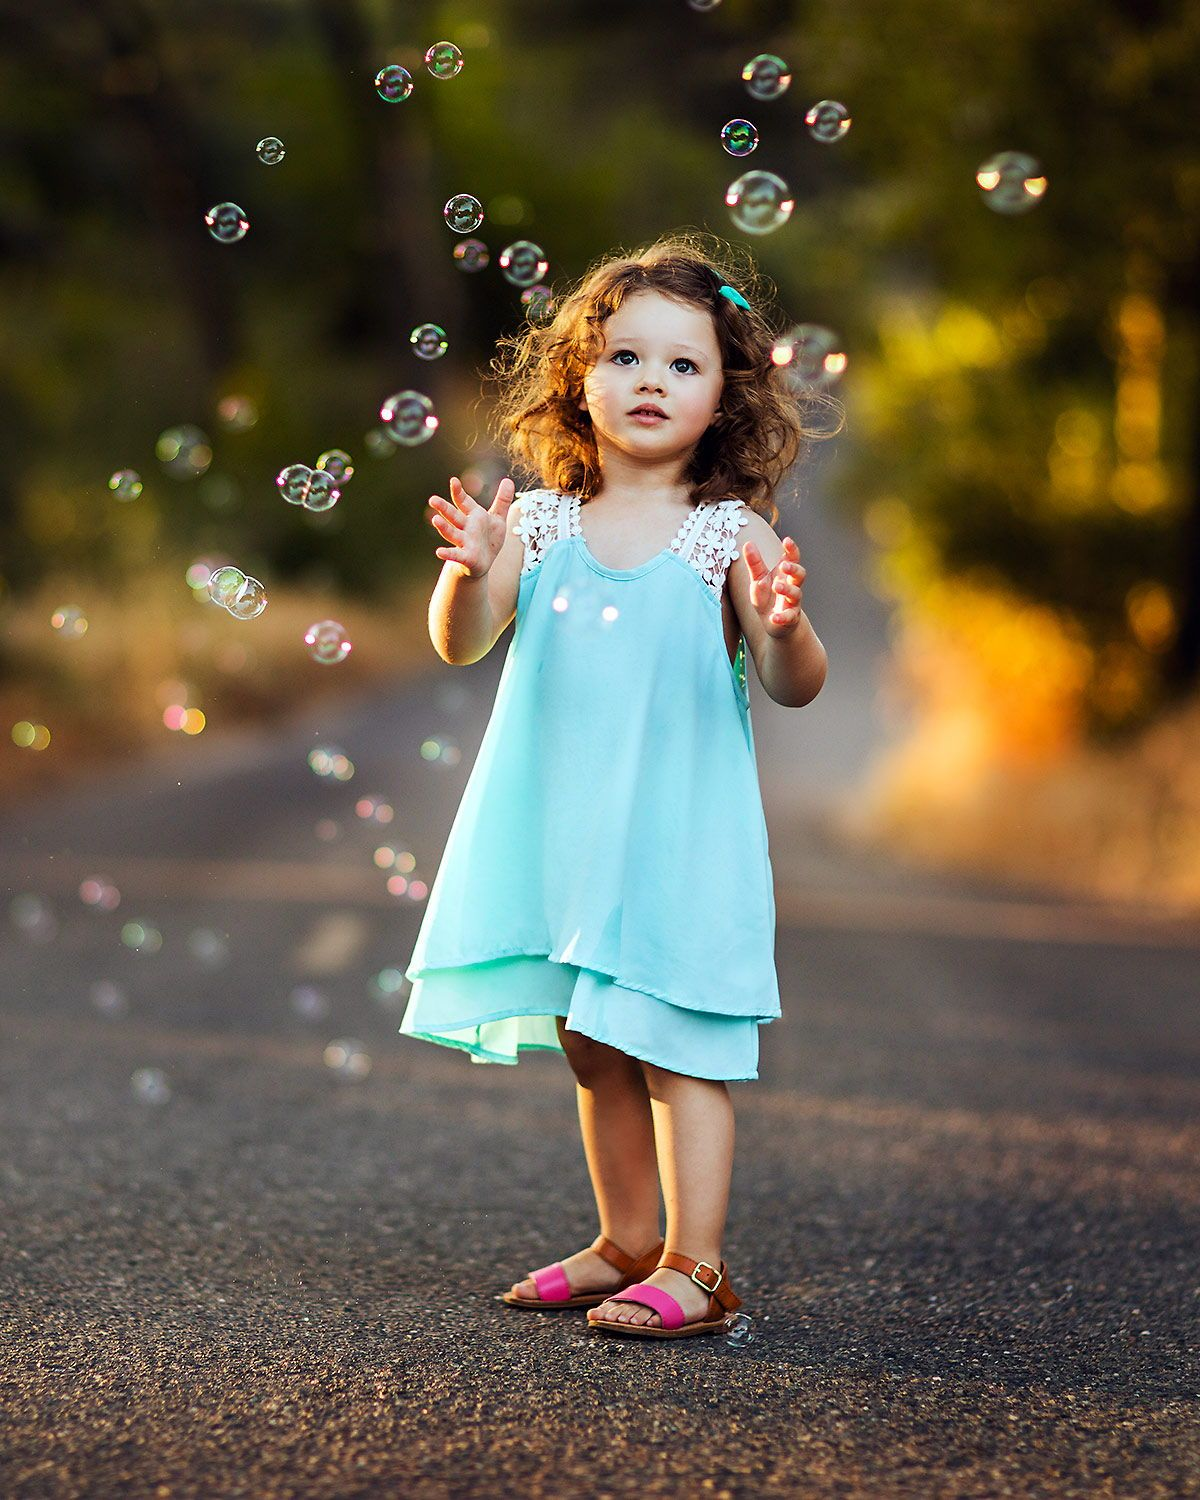 Lifestyle children photography ideas. Cute kids photos outdoors. Kids  posing and outfit ideas in 2020 | Child photography girl, Kids photoshoot,  Toddler photoshoot